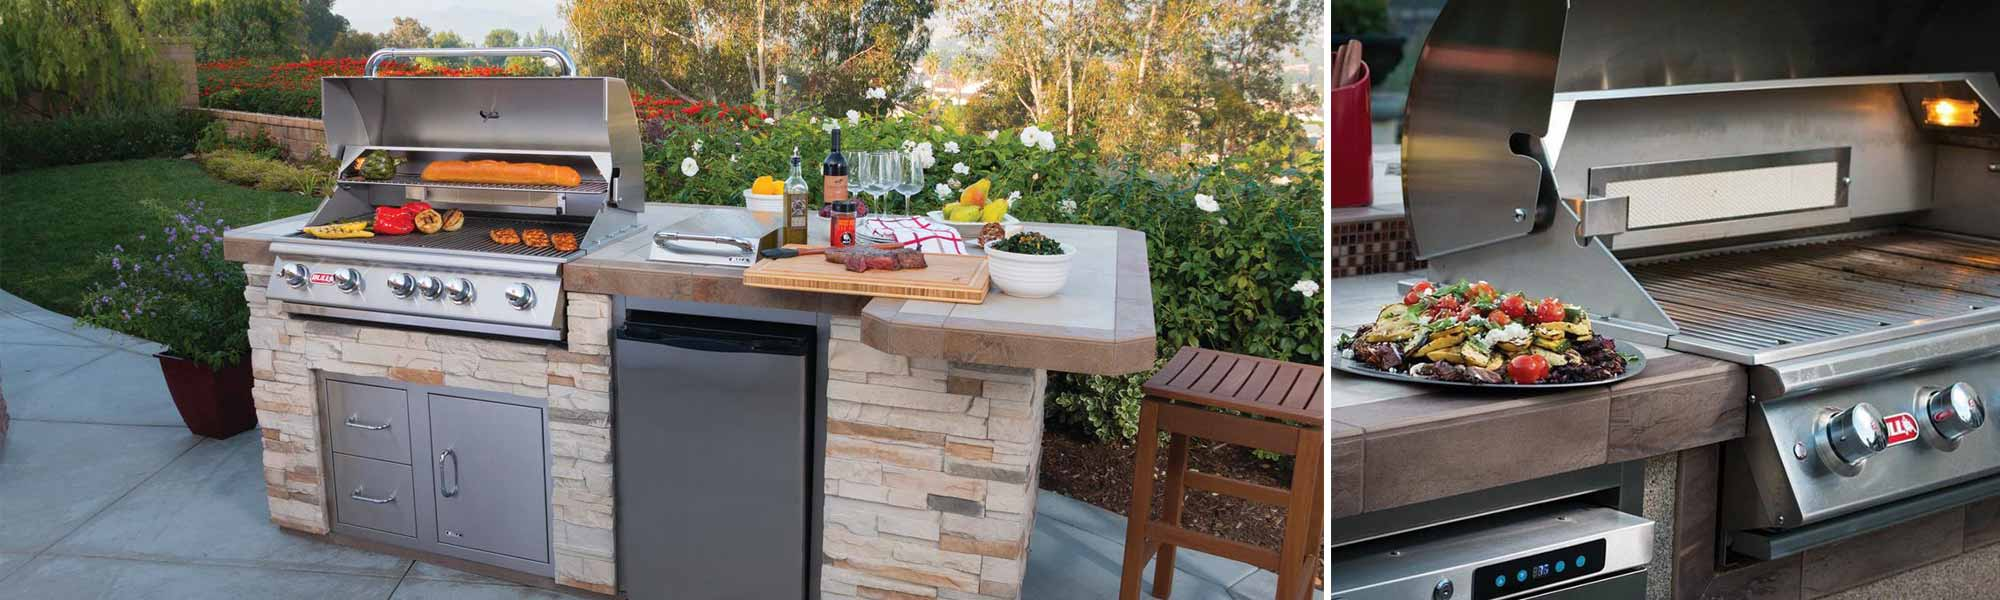 GrillsOutdoor Kitchen - Dining table with built in grill